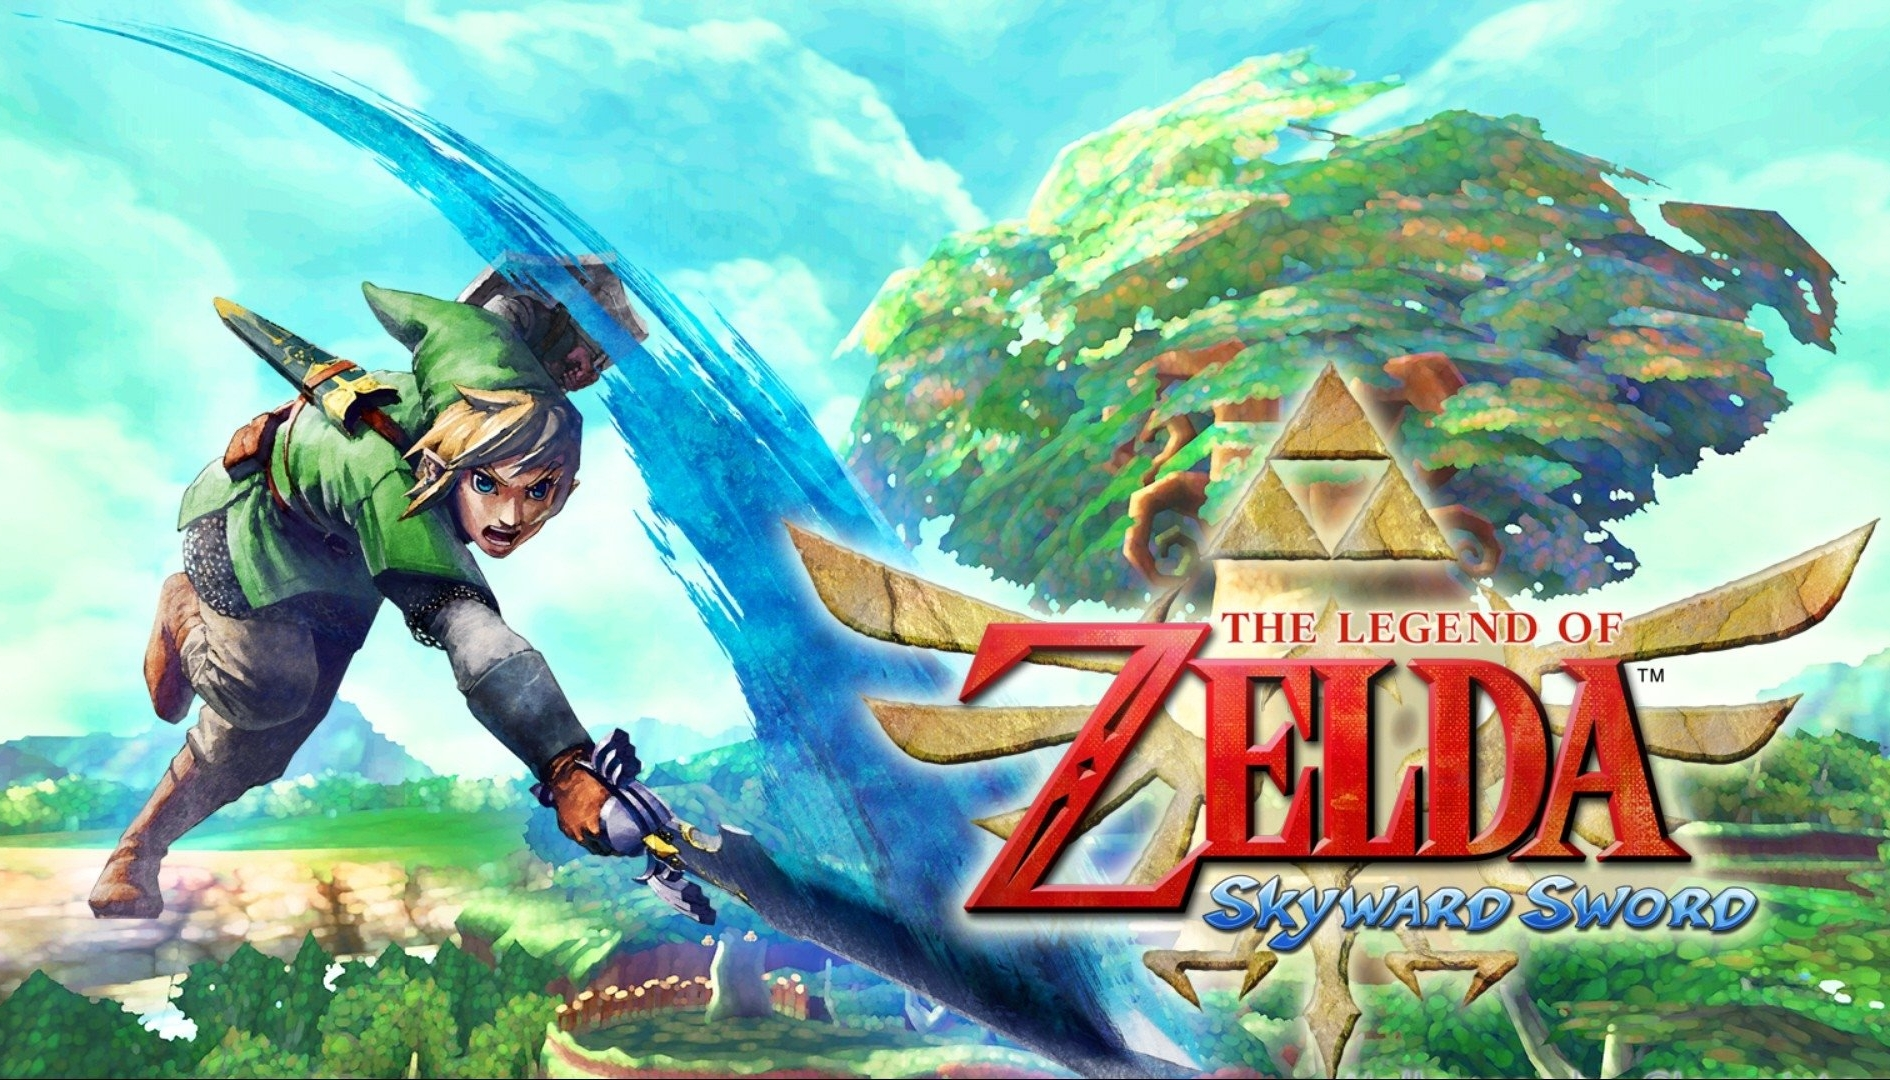 The Legend of Zelda Skyward Sword solo l'inizio, altri Zelda nel 2021?